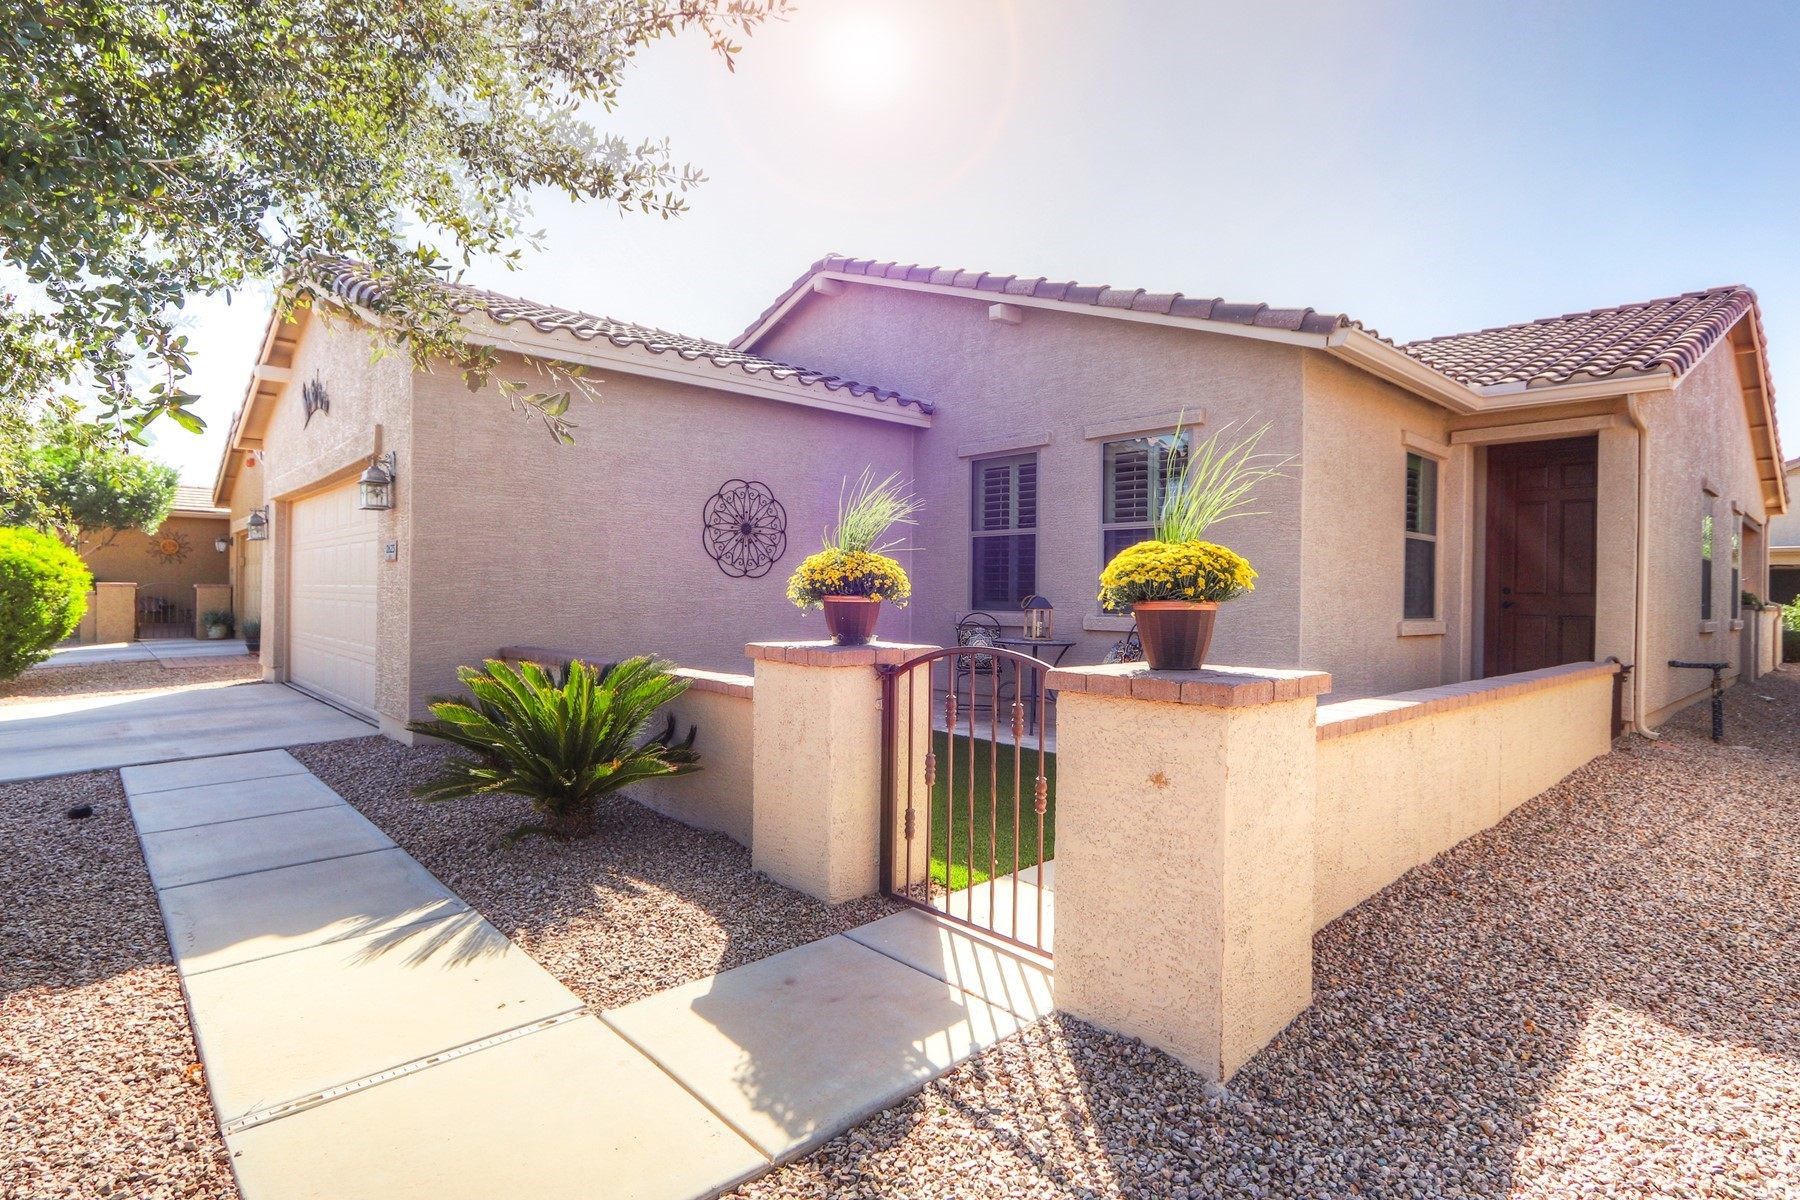 Single Family Homes for Sale at Mission Royale 2623 E GOLDEN TRL Casa Grande, Arizona 85194 United States